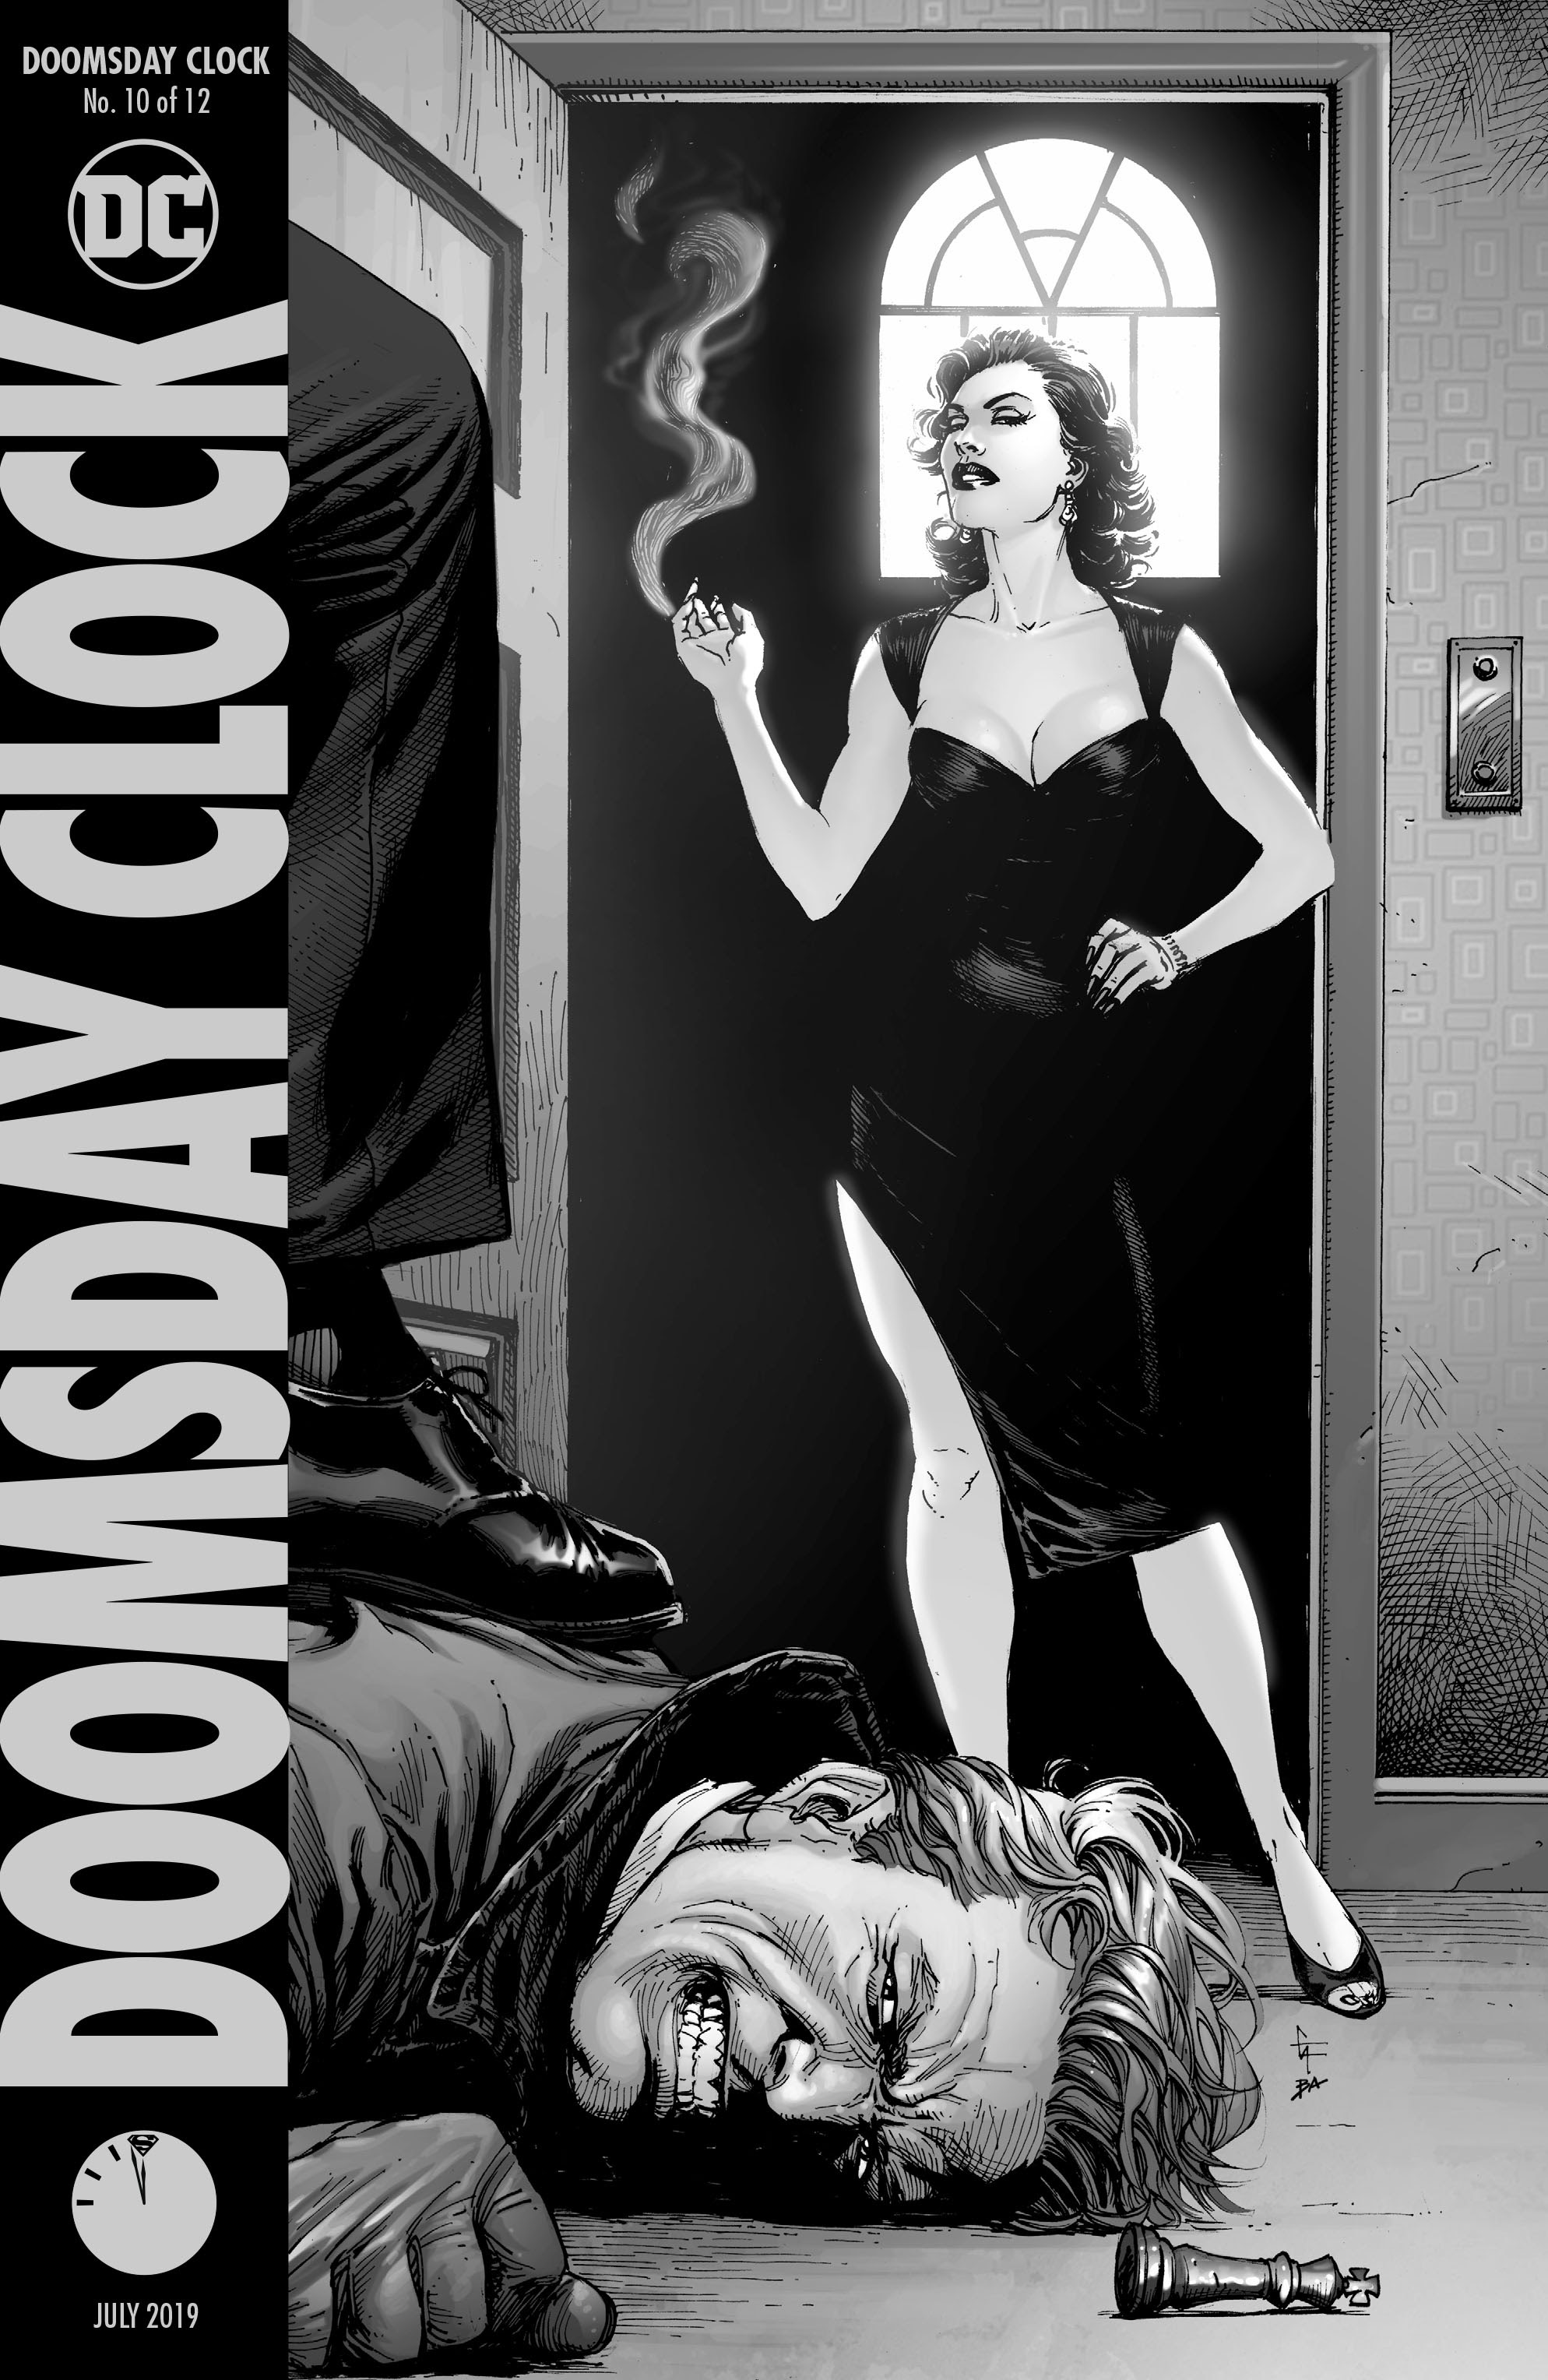 Doomsday Clock Viewcomic Reading Comics Online For Free 2019